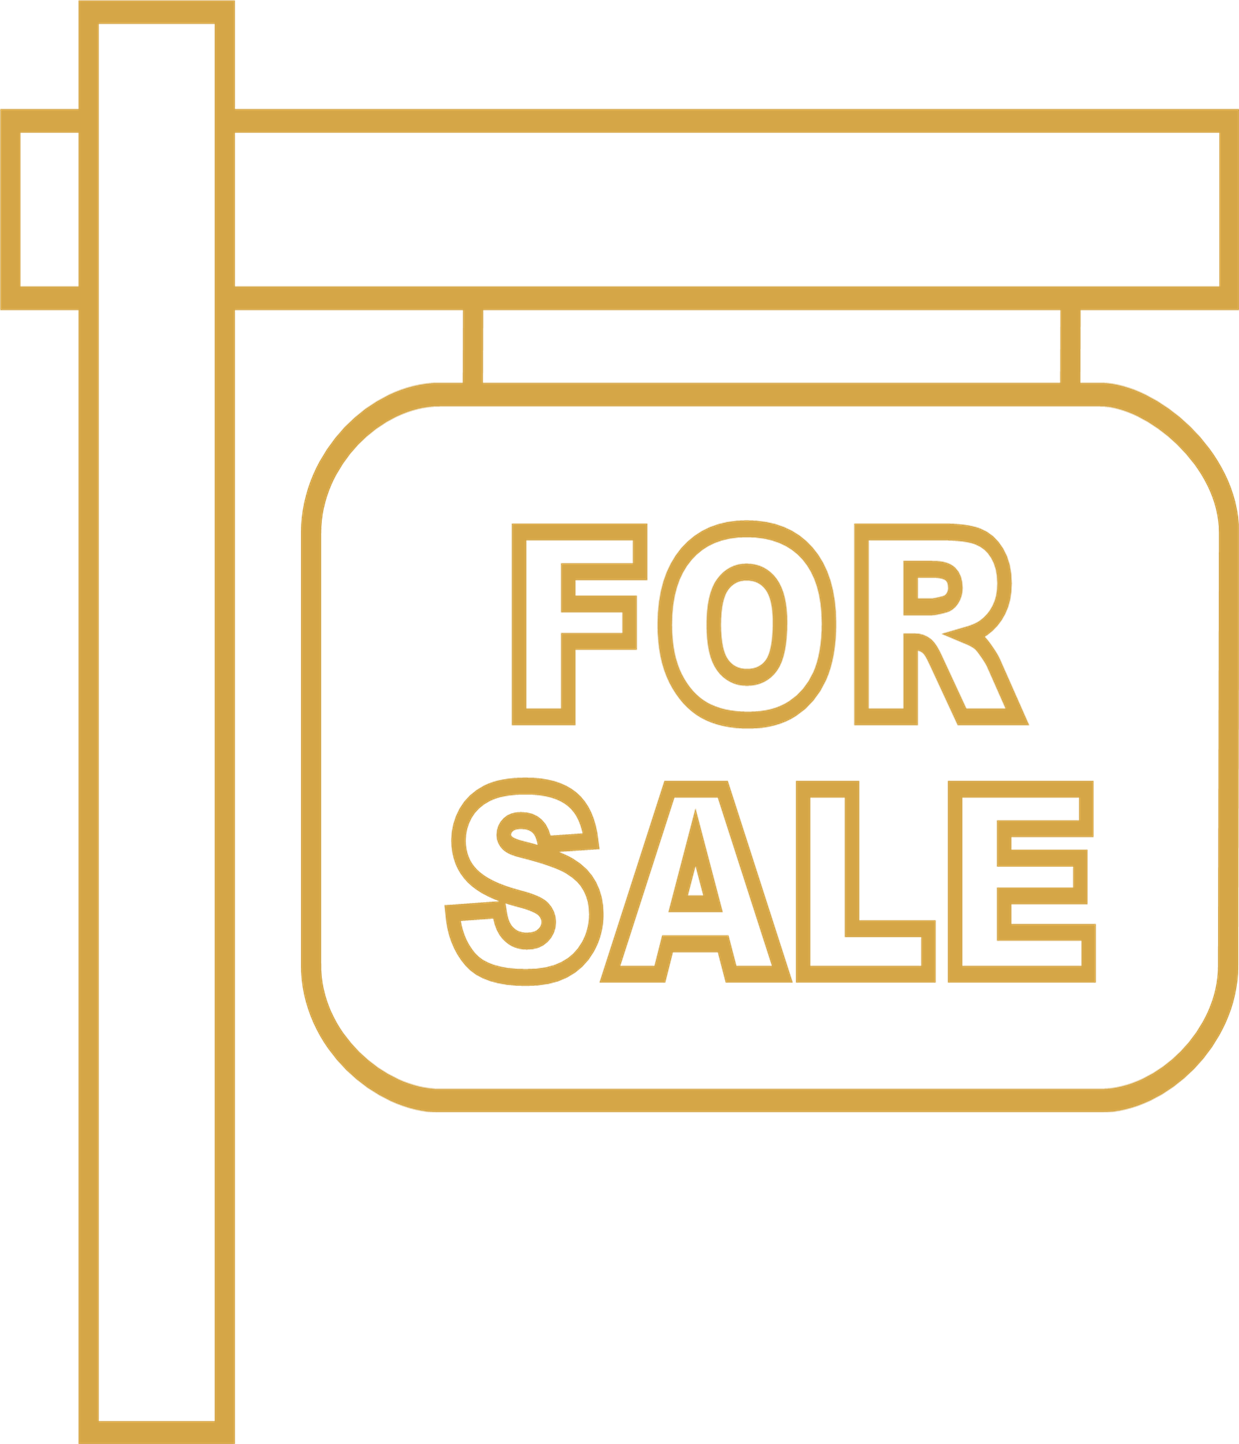 House For sale lawn sign icon